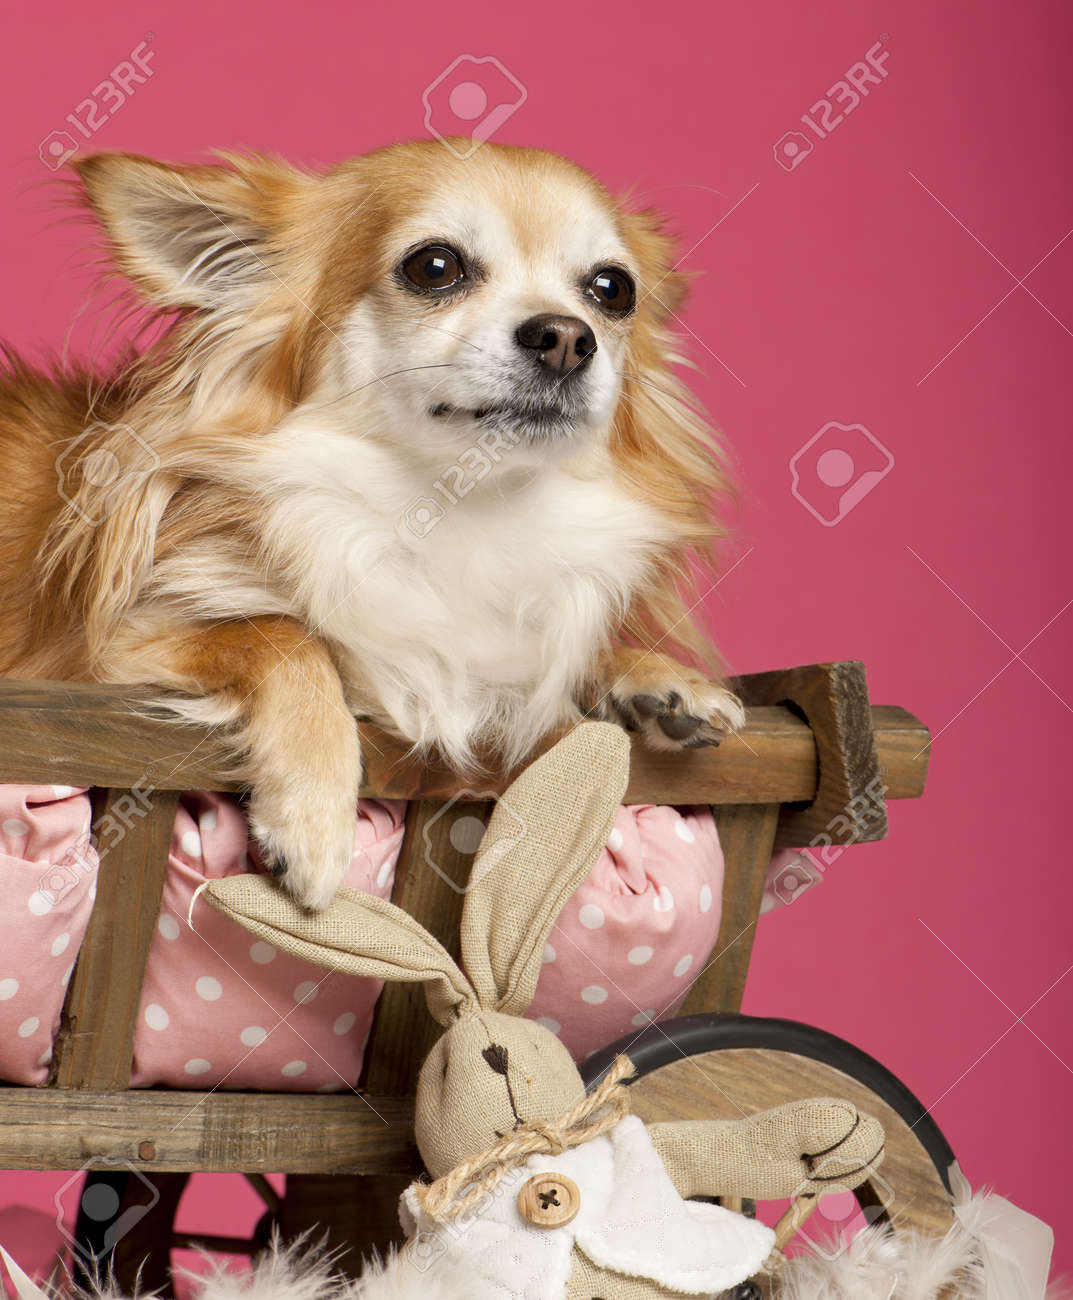 Chihuahua Lying In Wooden Dog Bed Wagon With Stuffed Animal In